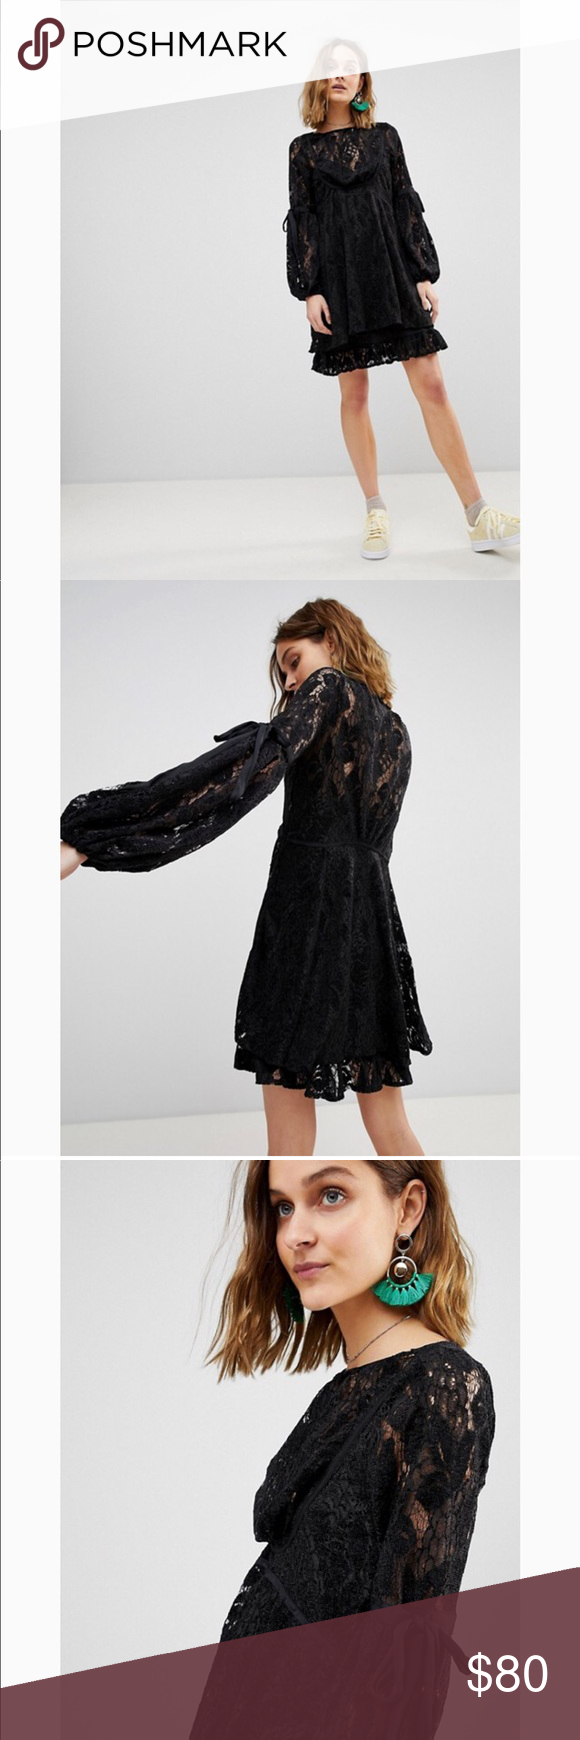 da3f6e790c953 Free People Ruby Lace Dress with Tie Sleeves Free People Ruby Lace Dress  with Tie Sleeves All laces   new  xs  retail 150   freepeople  lace  mini   dress ...